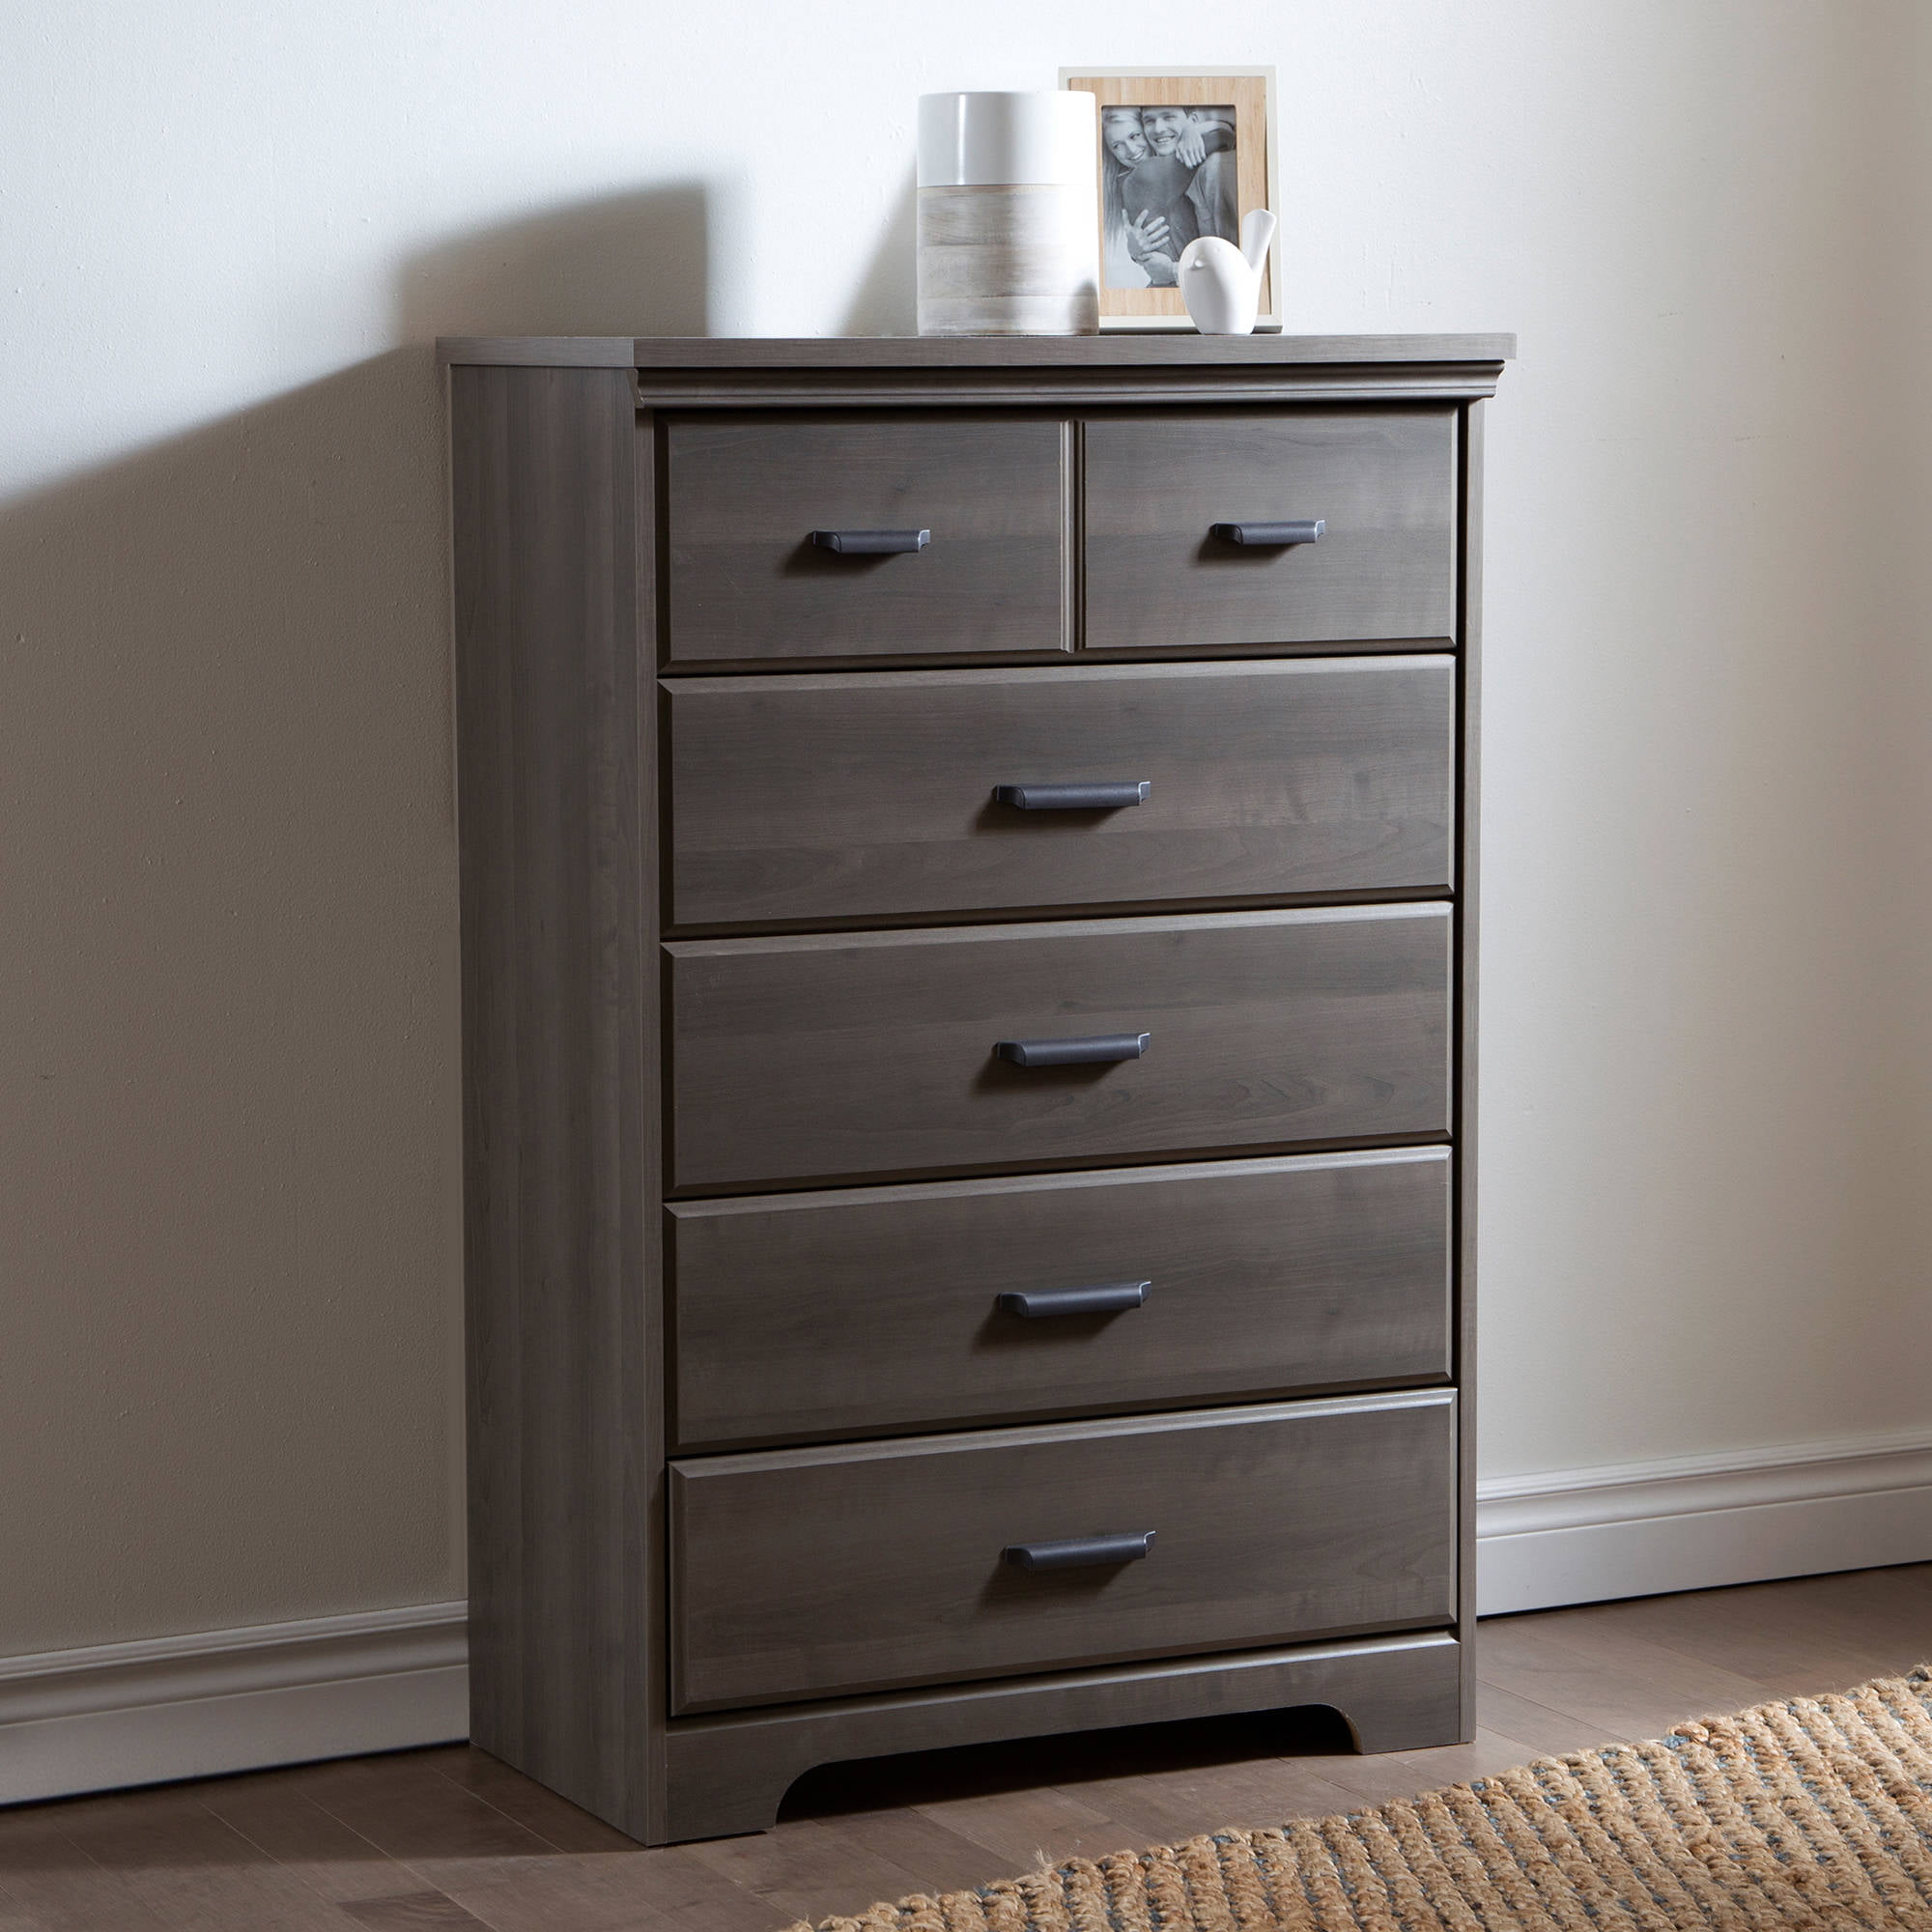 Laguna 5-Drawer Chest, Black Wood Grain - Walmart.com